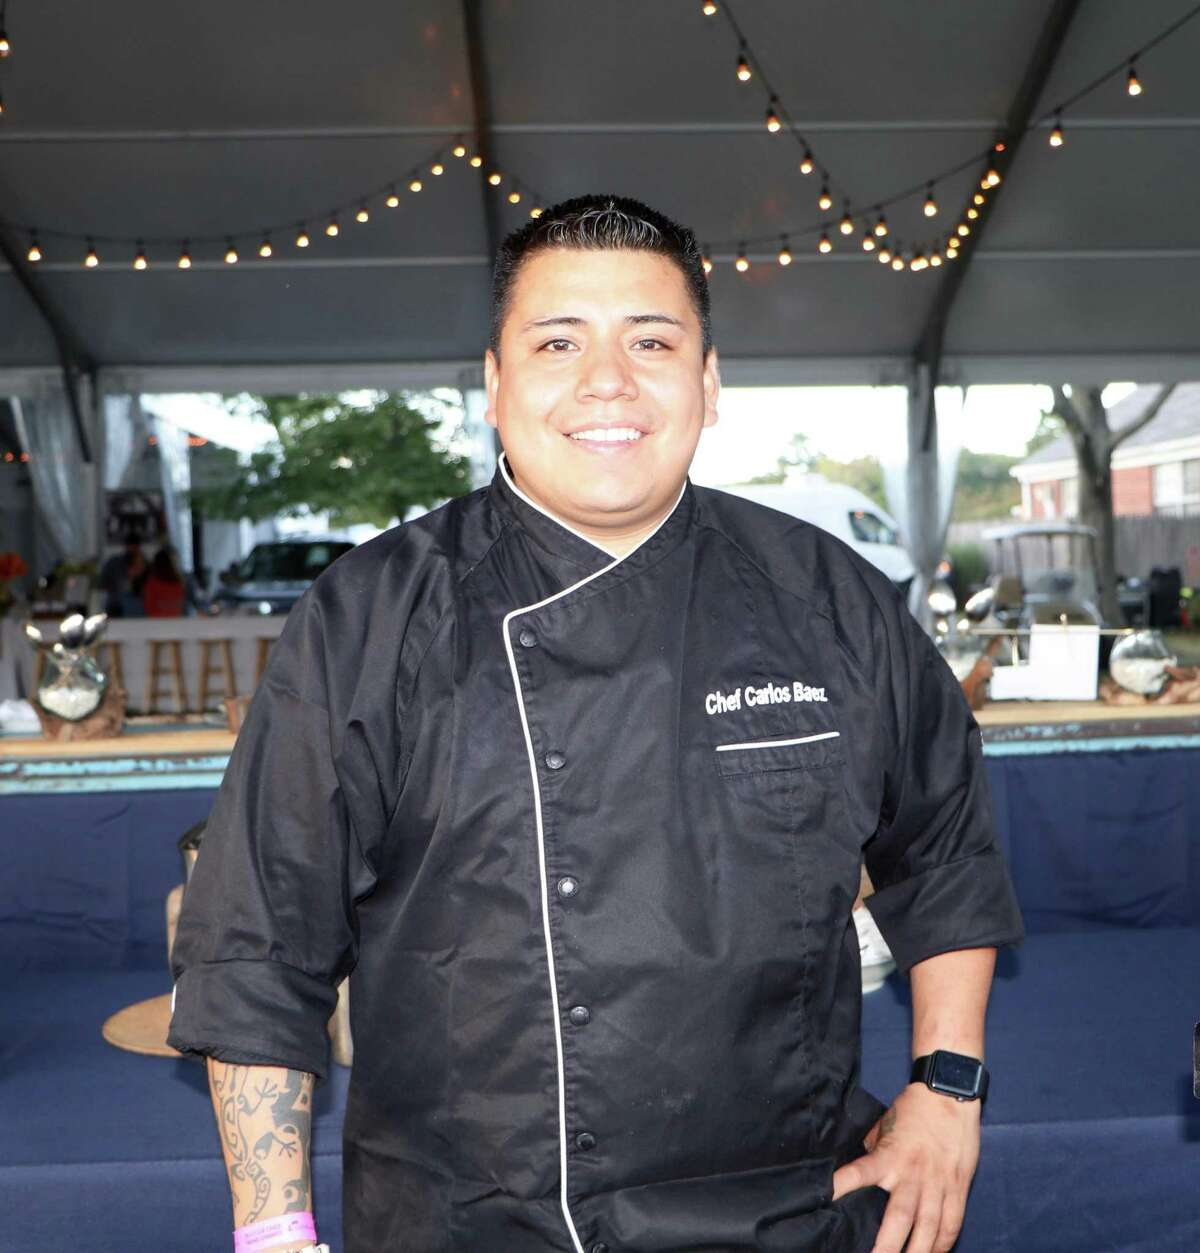 Executive chef Carlos Baez, of The Spread and El Segundo restaurants in Norwalk.